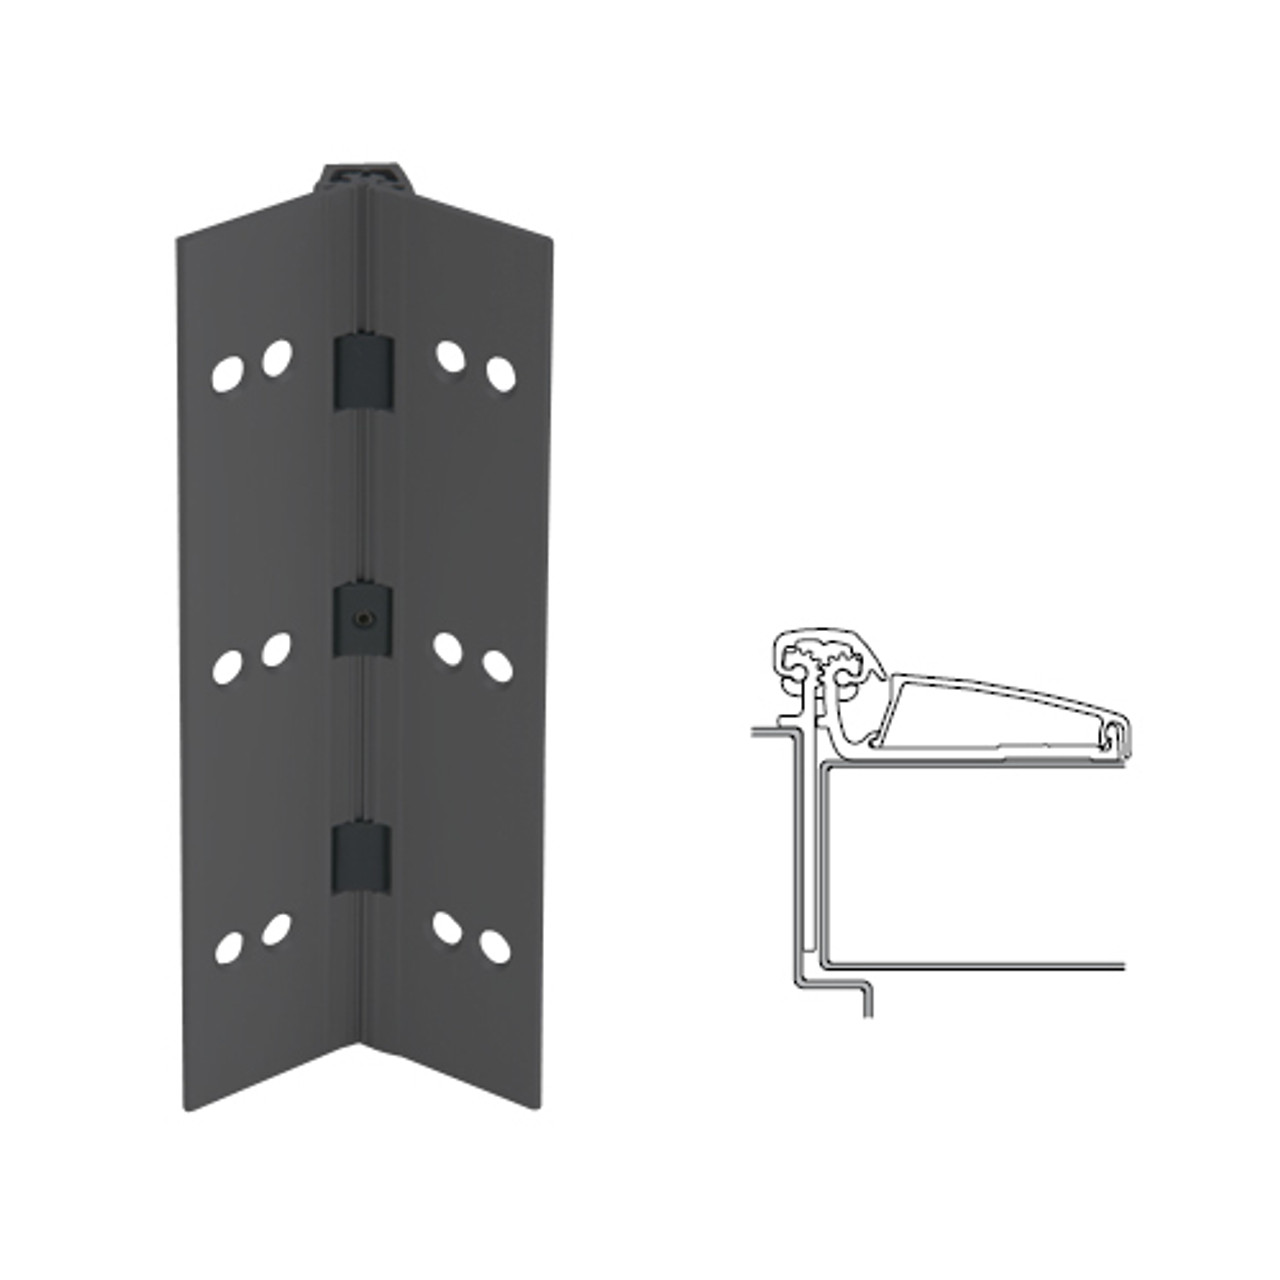 046XY-315AN-83-SECWDWD IVES Adjustable Half Surface Continuous Geared Hinges with Security Screws - Hex Pin Drive in Anodized Black